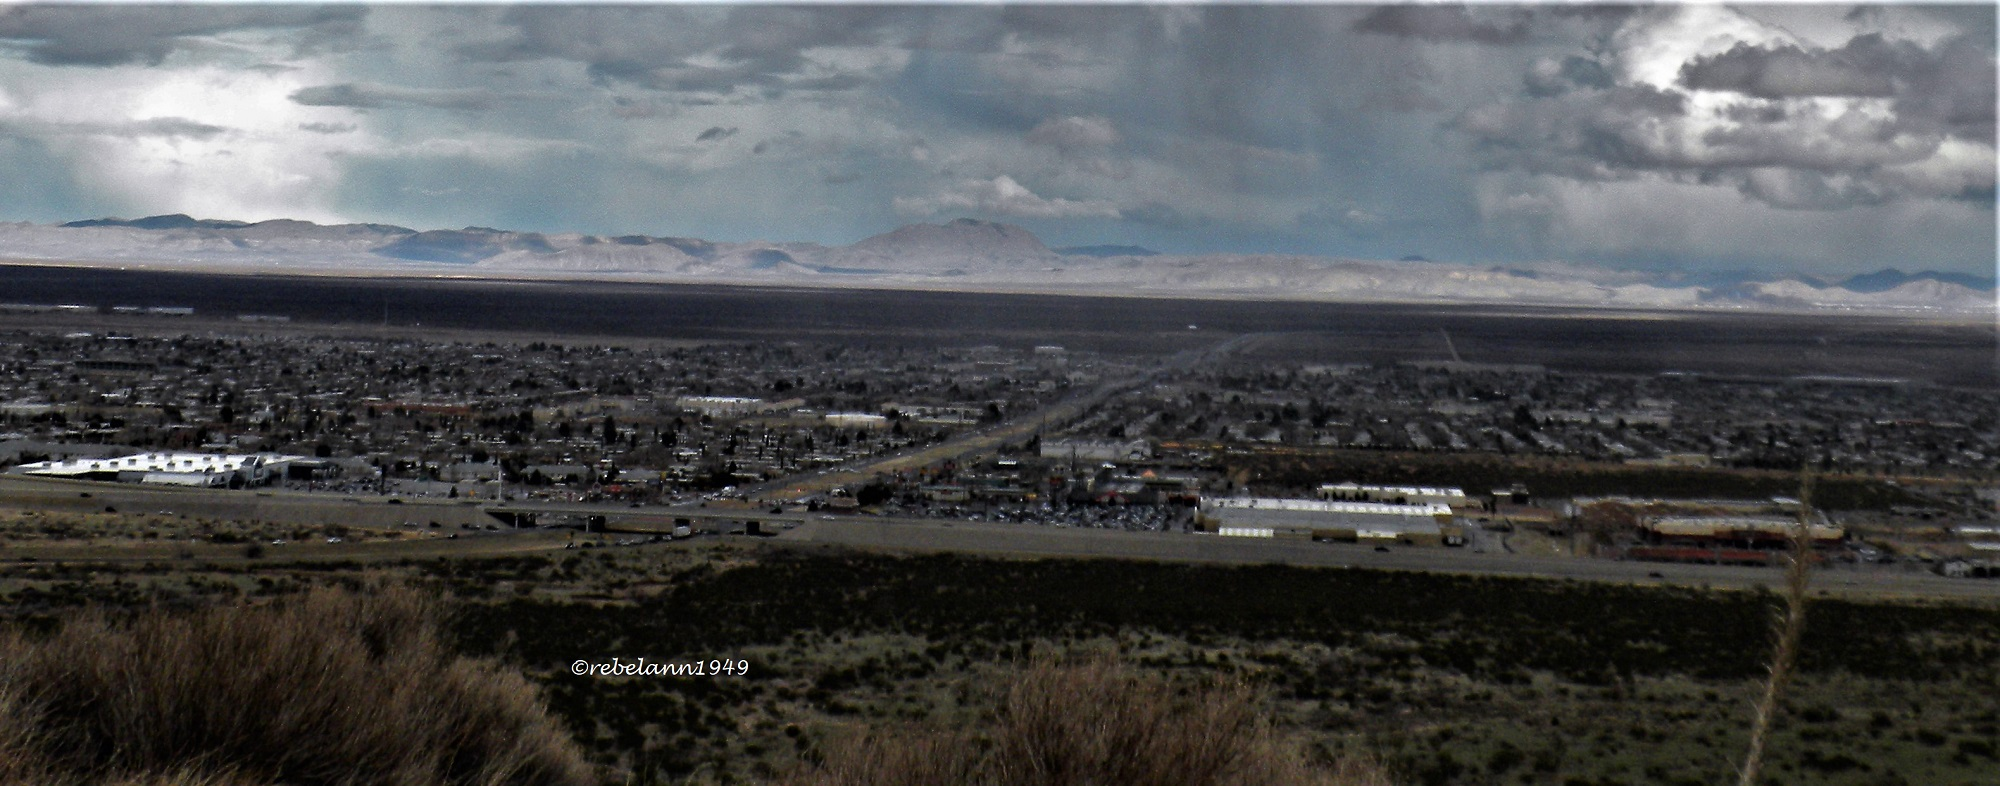 Old photo of northeast El Paso, I took this shot because the Guadalupes were so clear on that day.